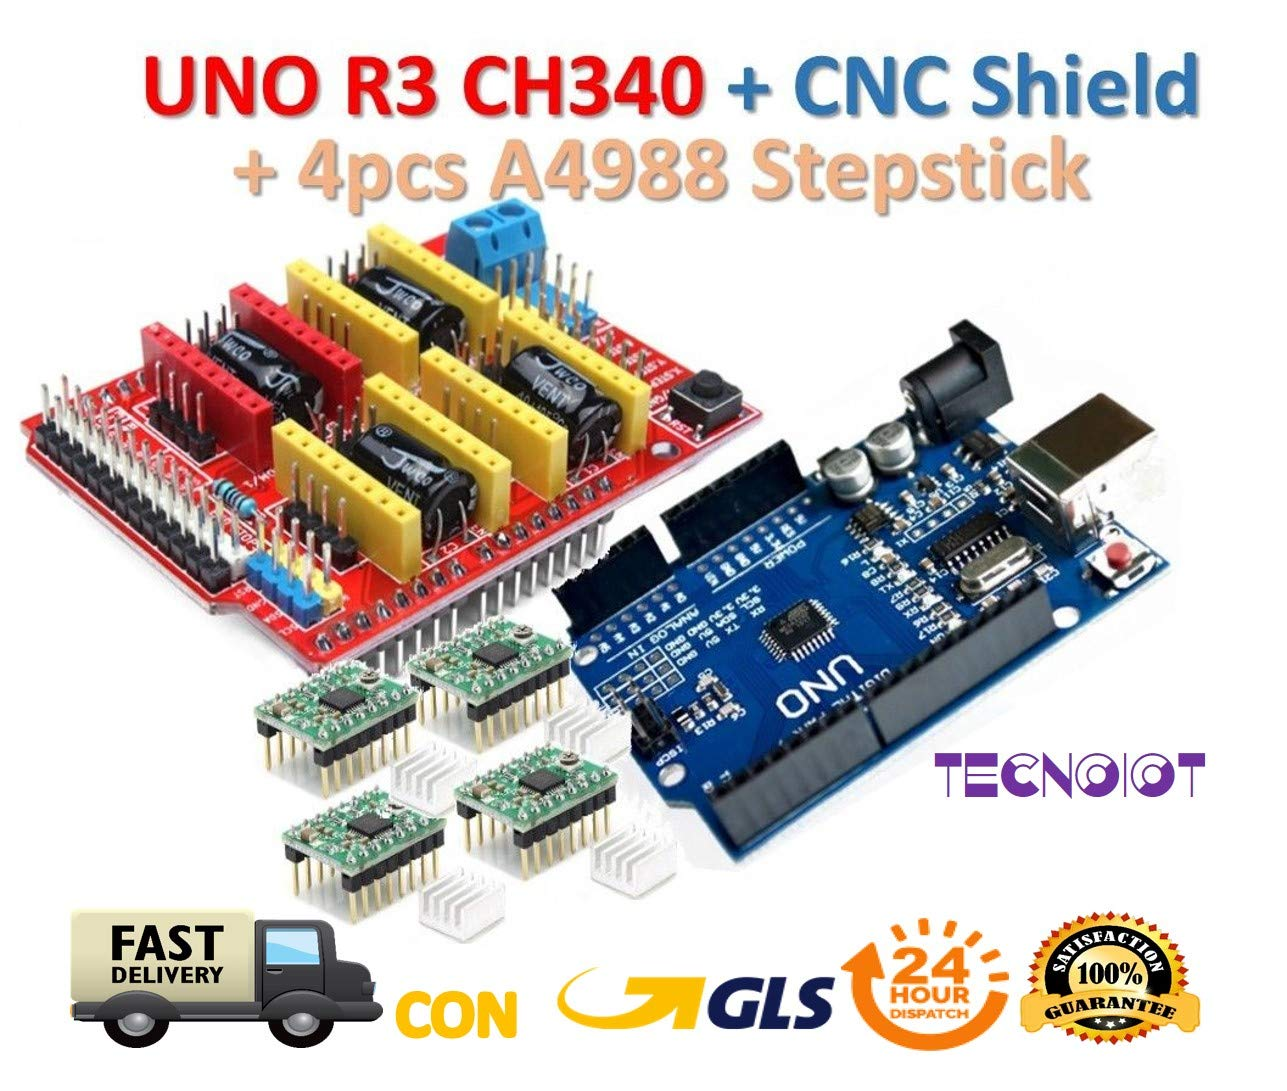 【3D printer kit】 CNC Shield V3.0 + UNO R3 Board + 4pcs Stepper motor controller A4988 with heat sink for 3D printer TECNOIOT UNO-R3-CNC-V3-A4988